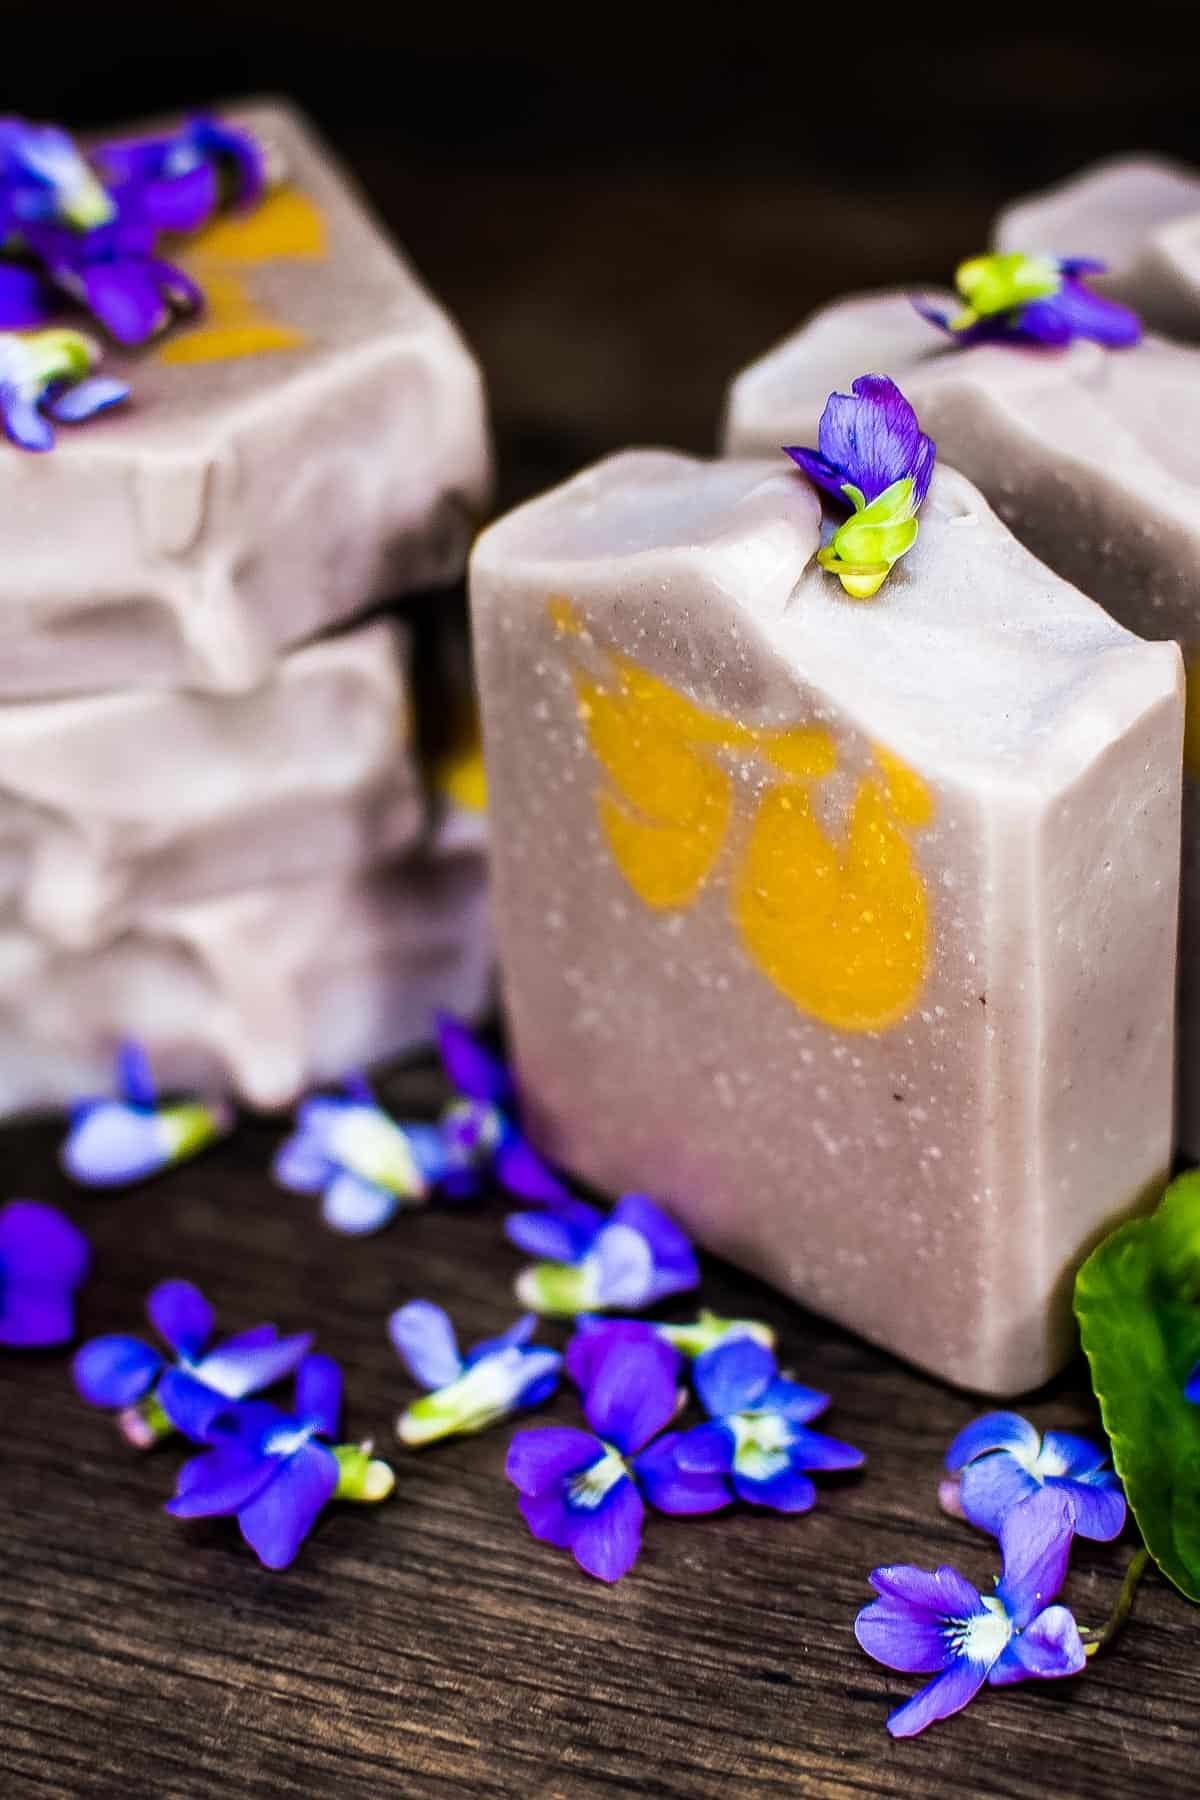 violet soap bars with purple flowers